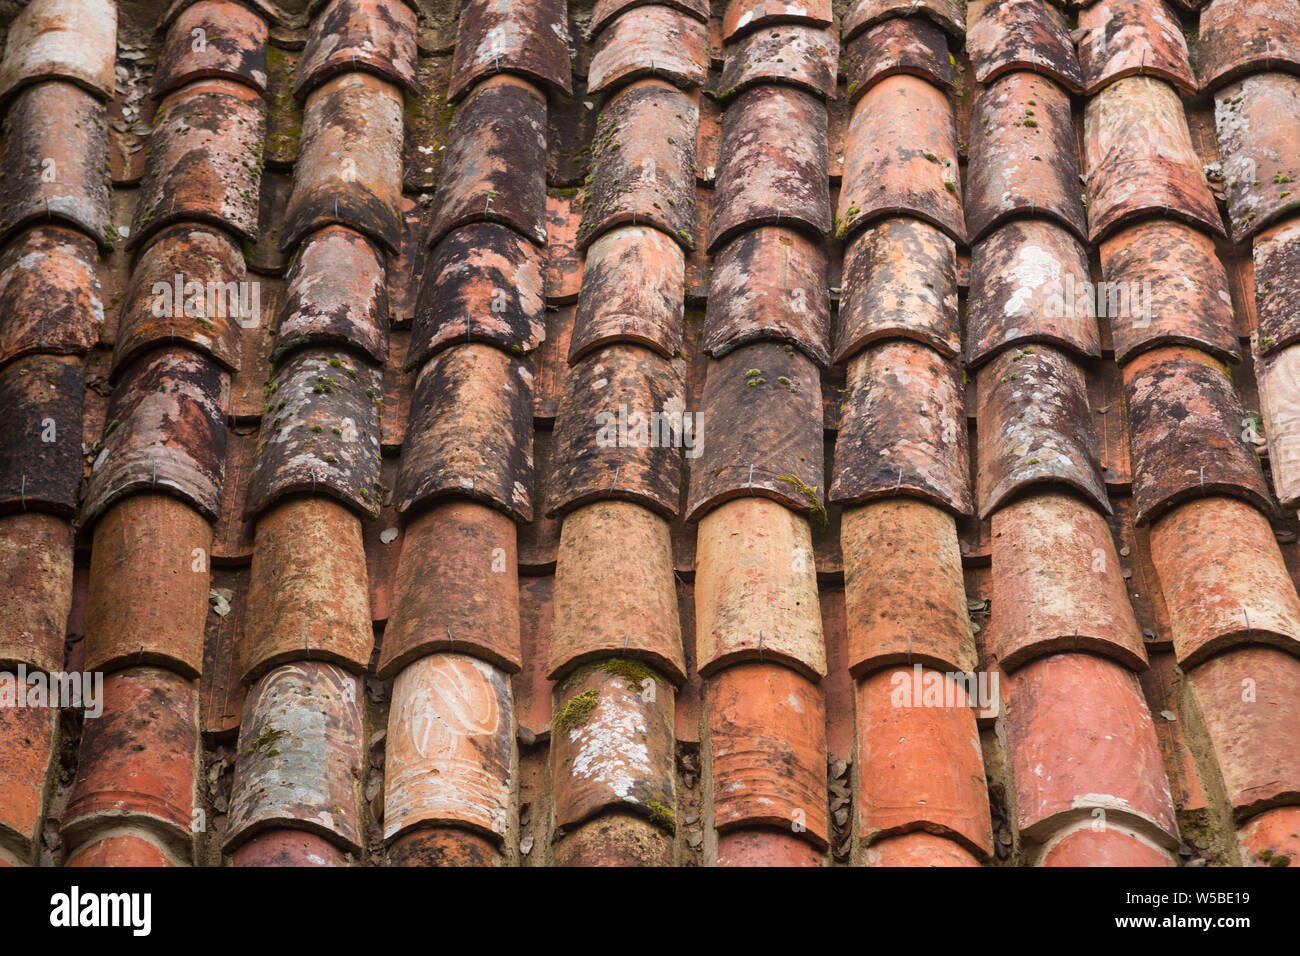 https www alamy com close up of old brown coloured terracotta monk and nun or mission or barrel roof tiles on building at the convent of the capuchos colares portugal image261481285 html